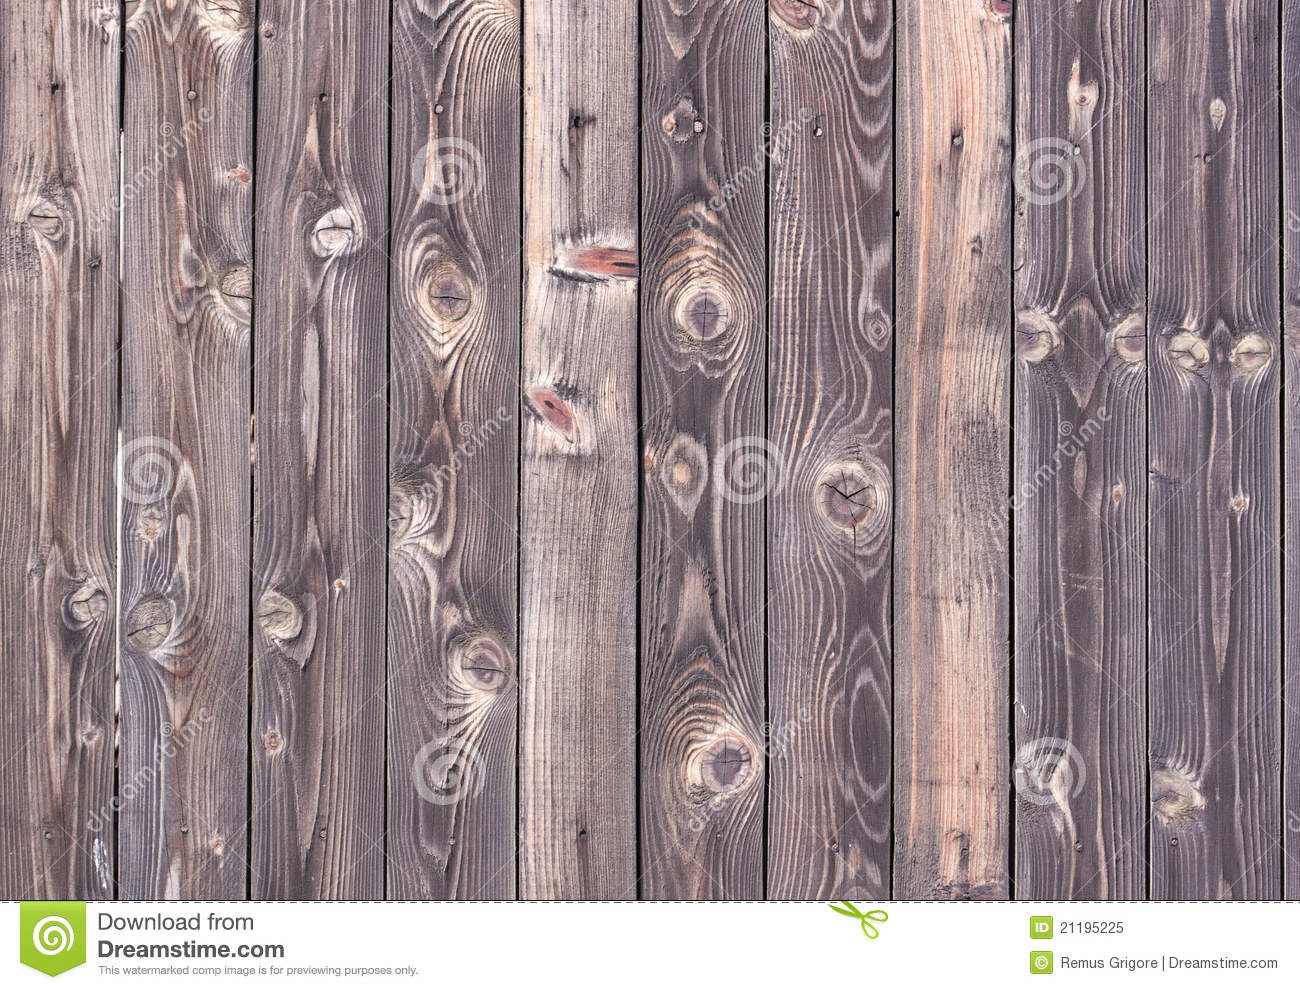 Wooden texture - RAW format